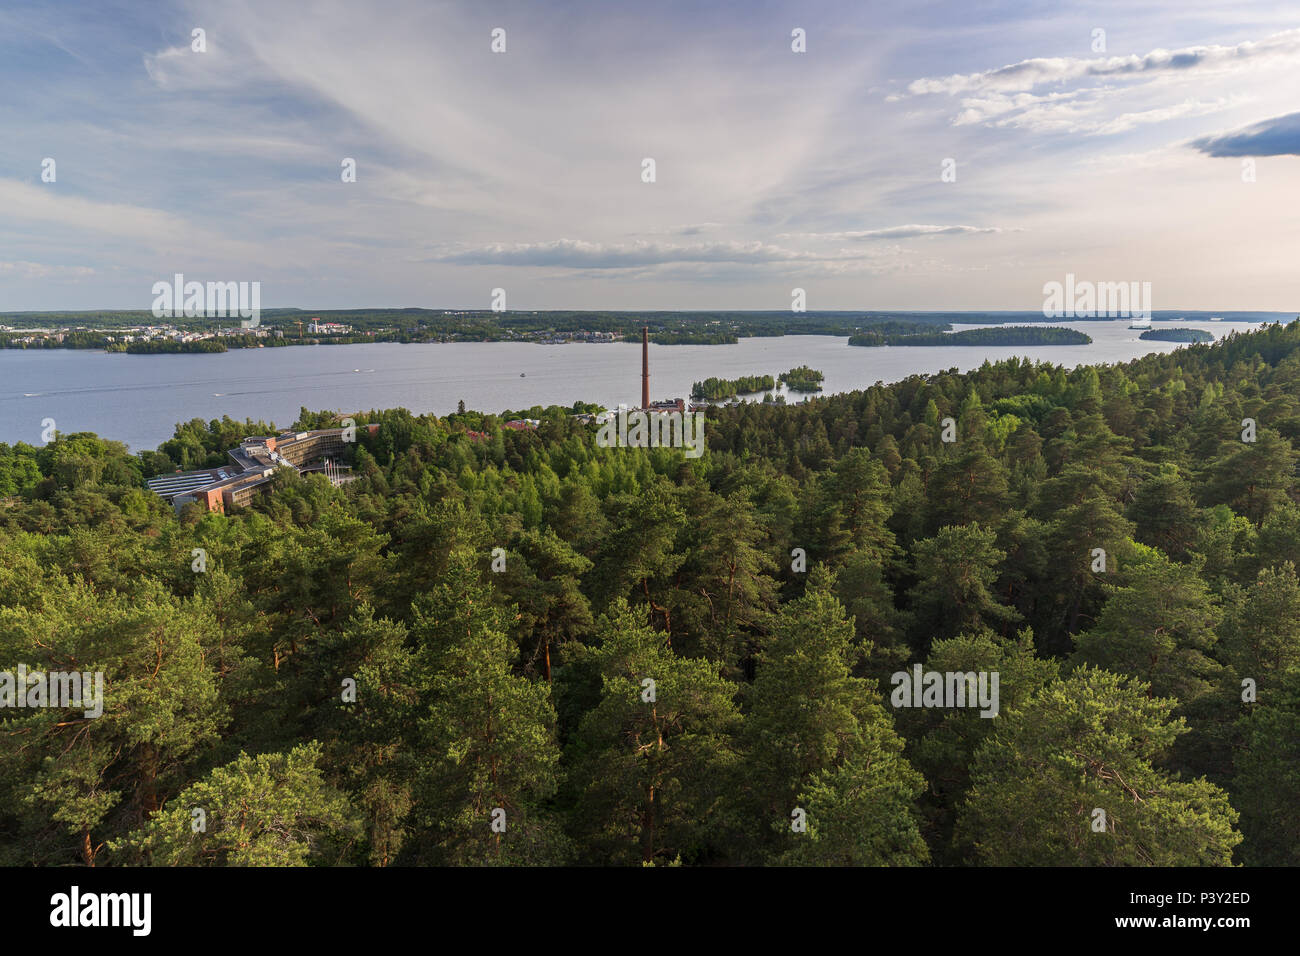 Buildings, forest at the Pyynikki ridge, Lake Pyhäjärvi and beyond in Tampere, Finland, viewed from above on a sunny day in the summer. - Stock Image